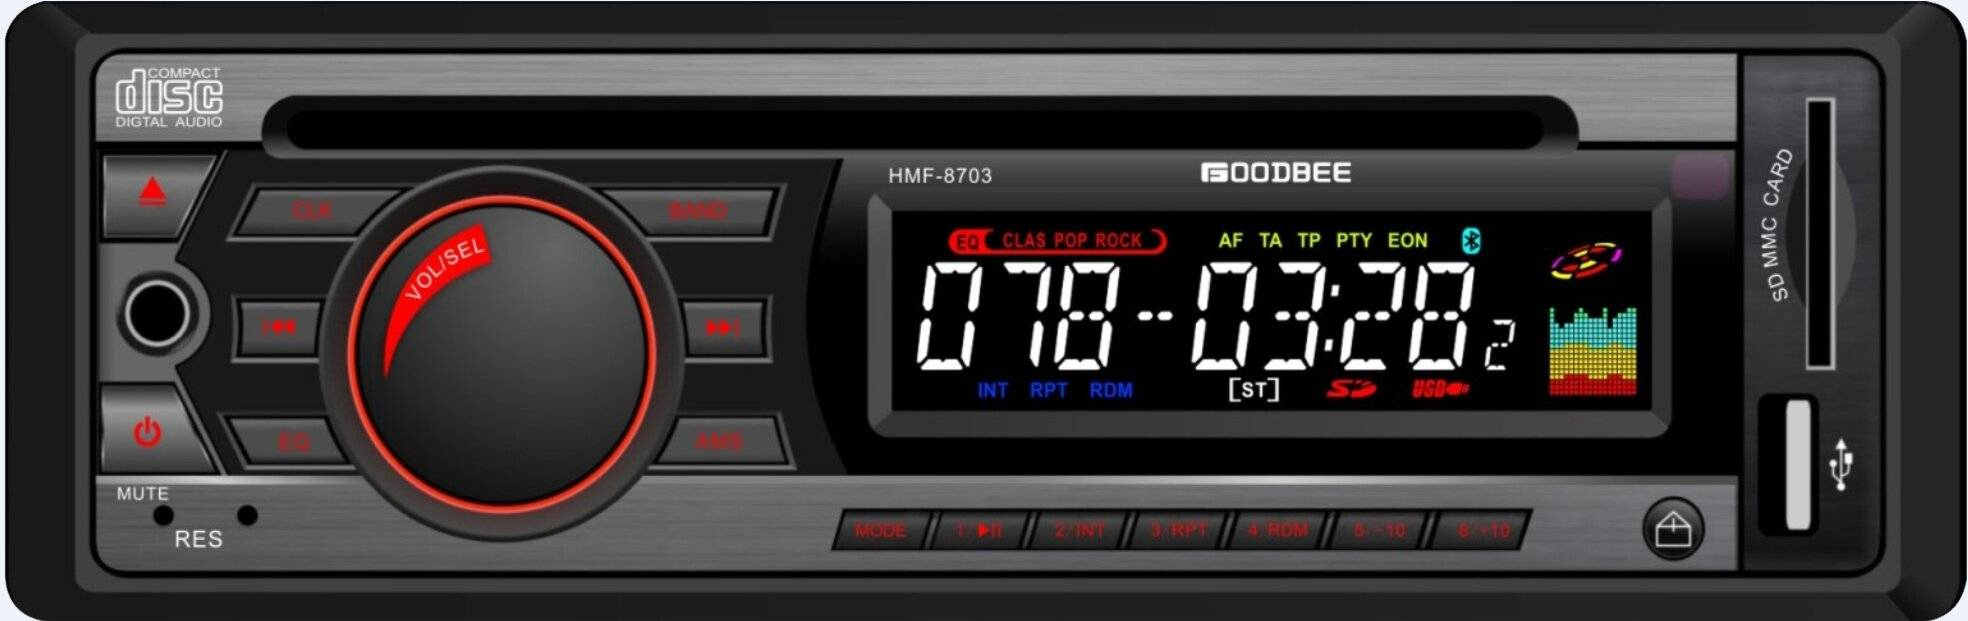 Detachable Panel Car CD,MP3 Player HMF-8703